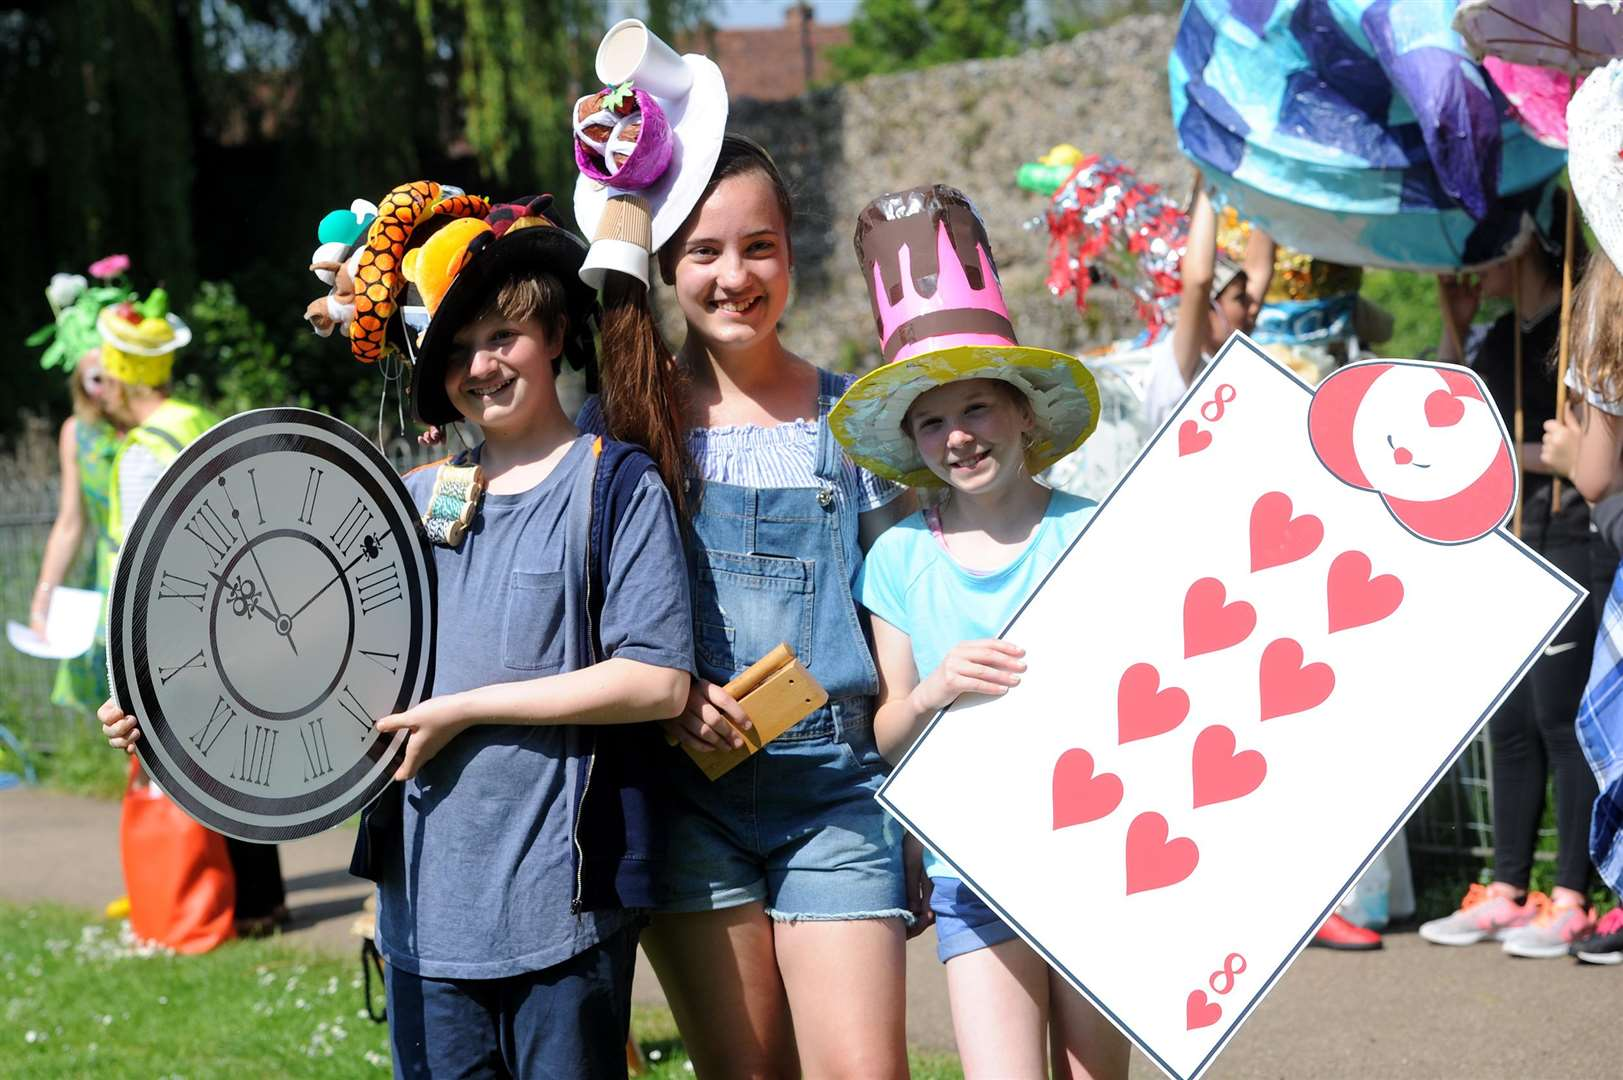 Nathan Barrett (11), Emily Walkowska (12) and Charlotte Berry (12) at the Mad Hatters' Parade